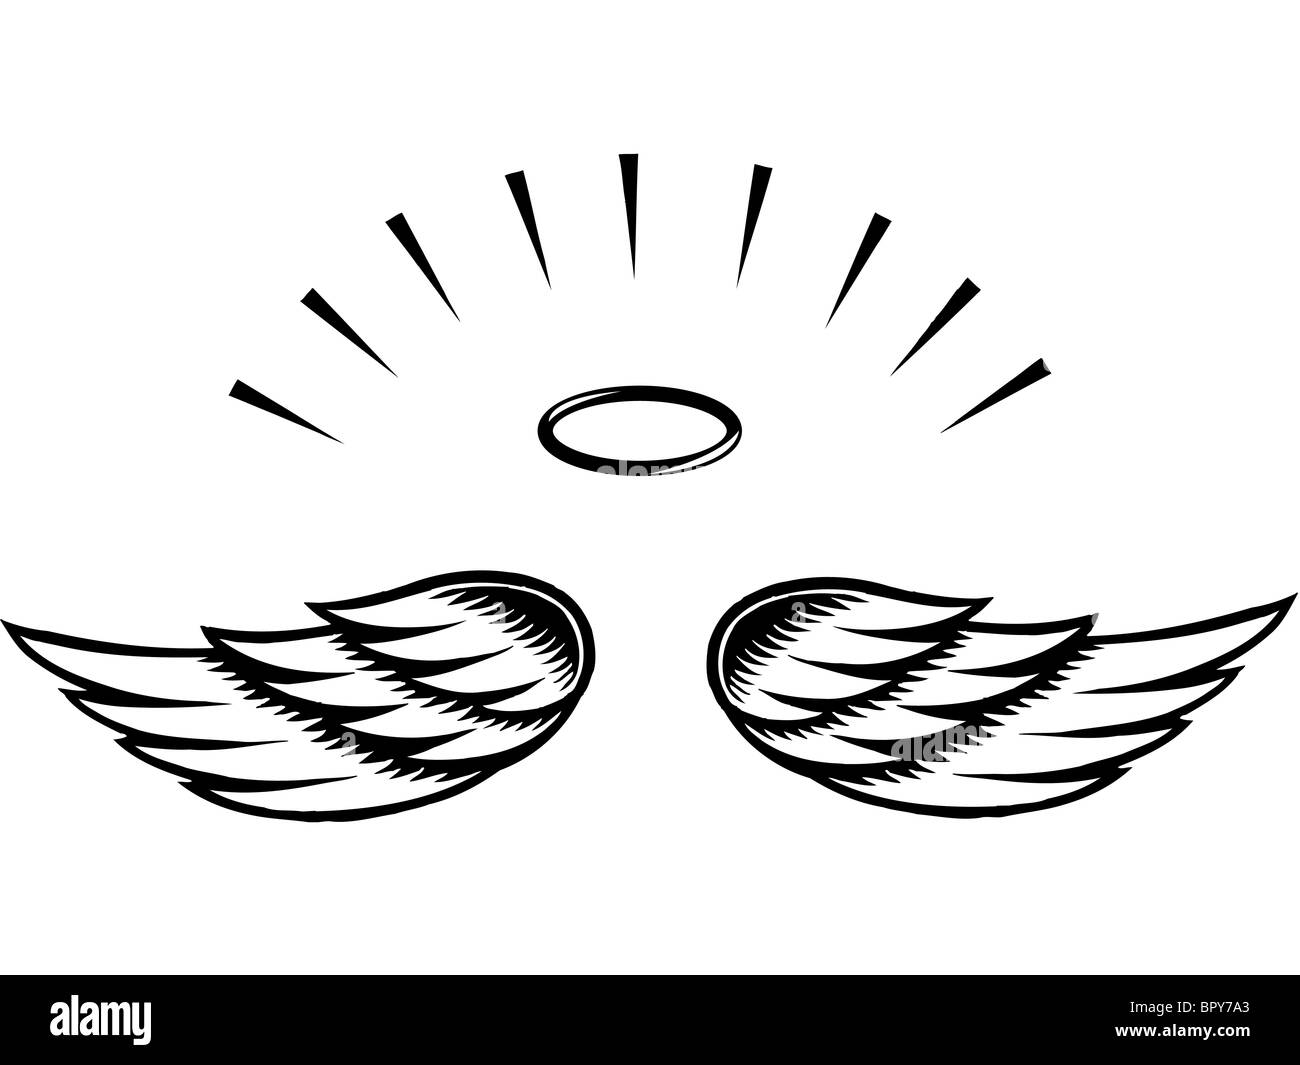 Illustration of angel wings - Stock Image